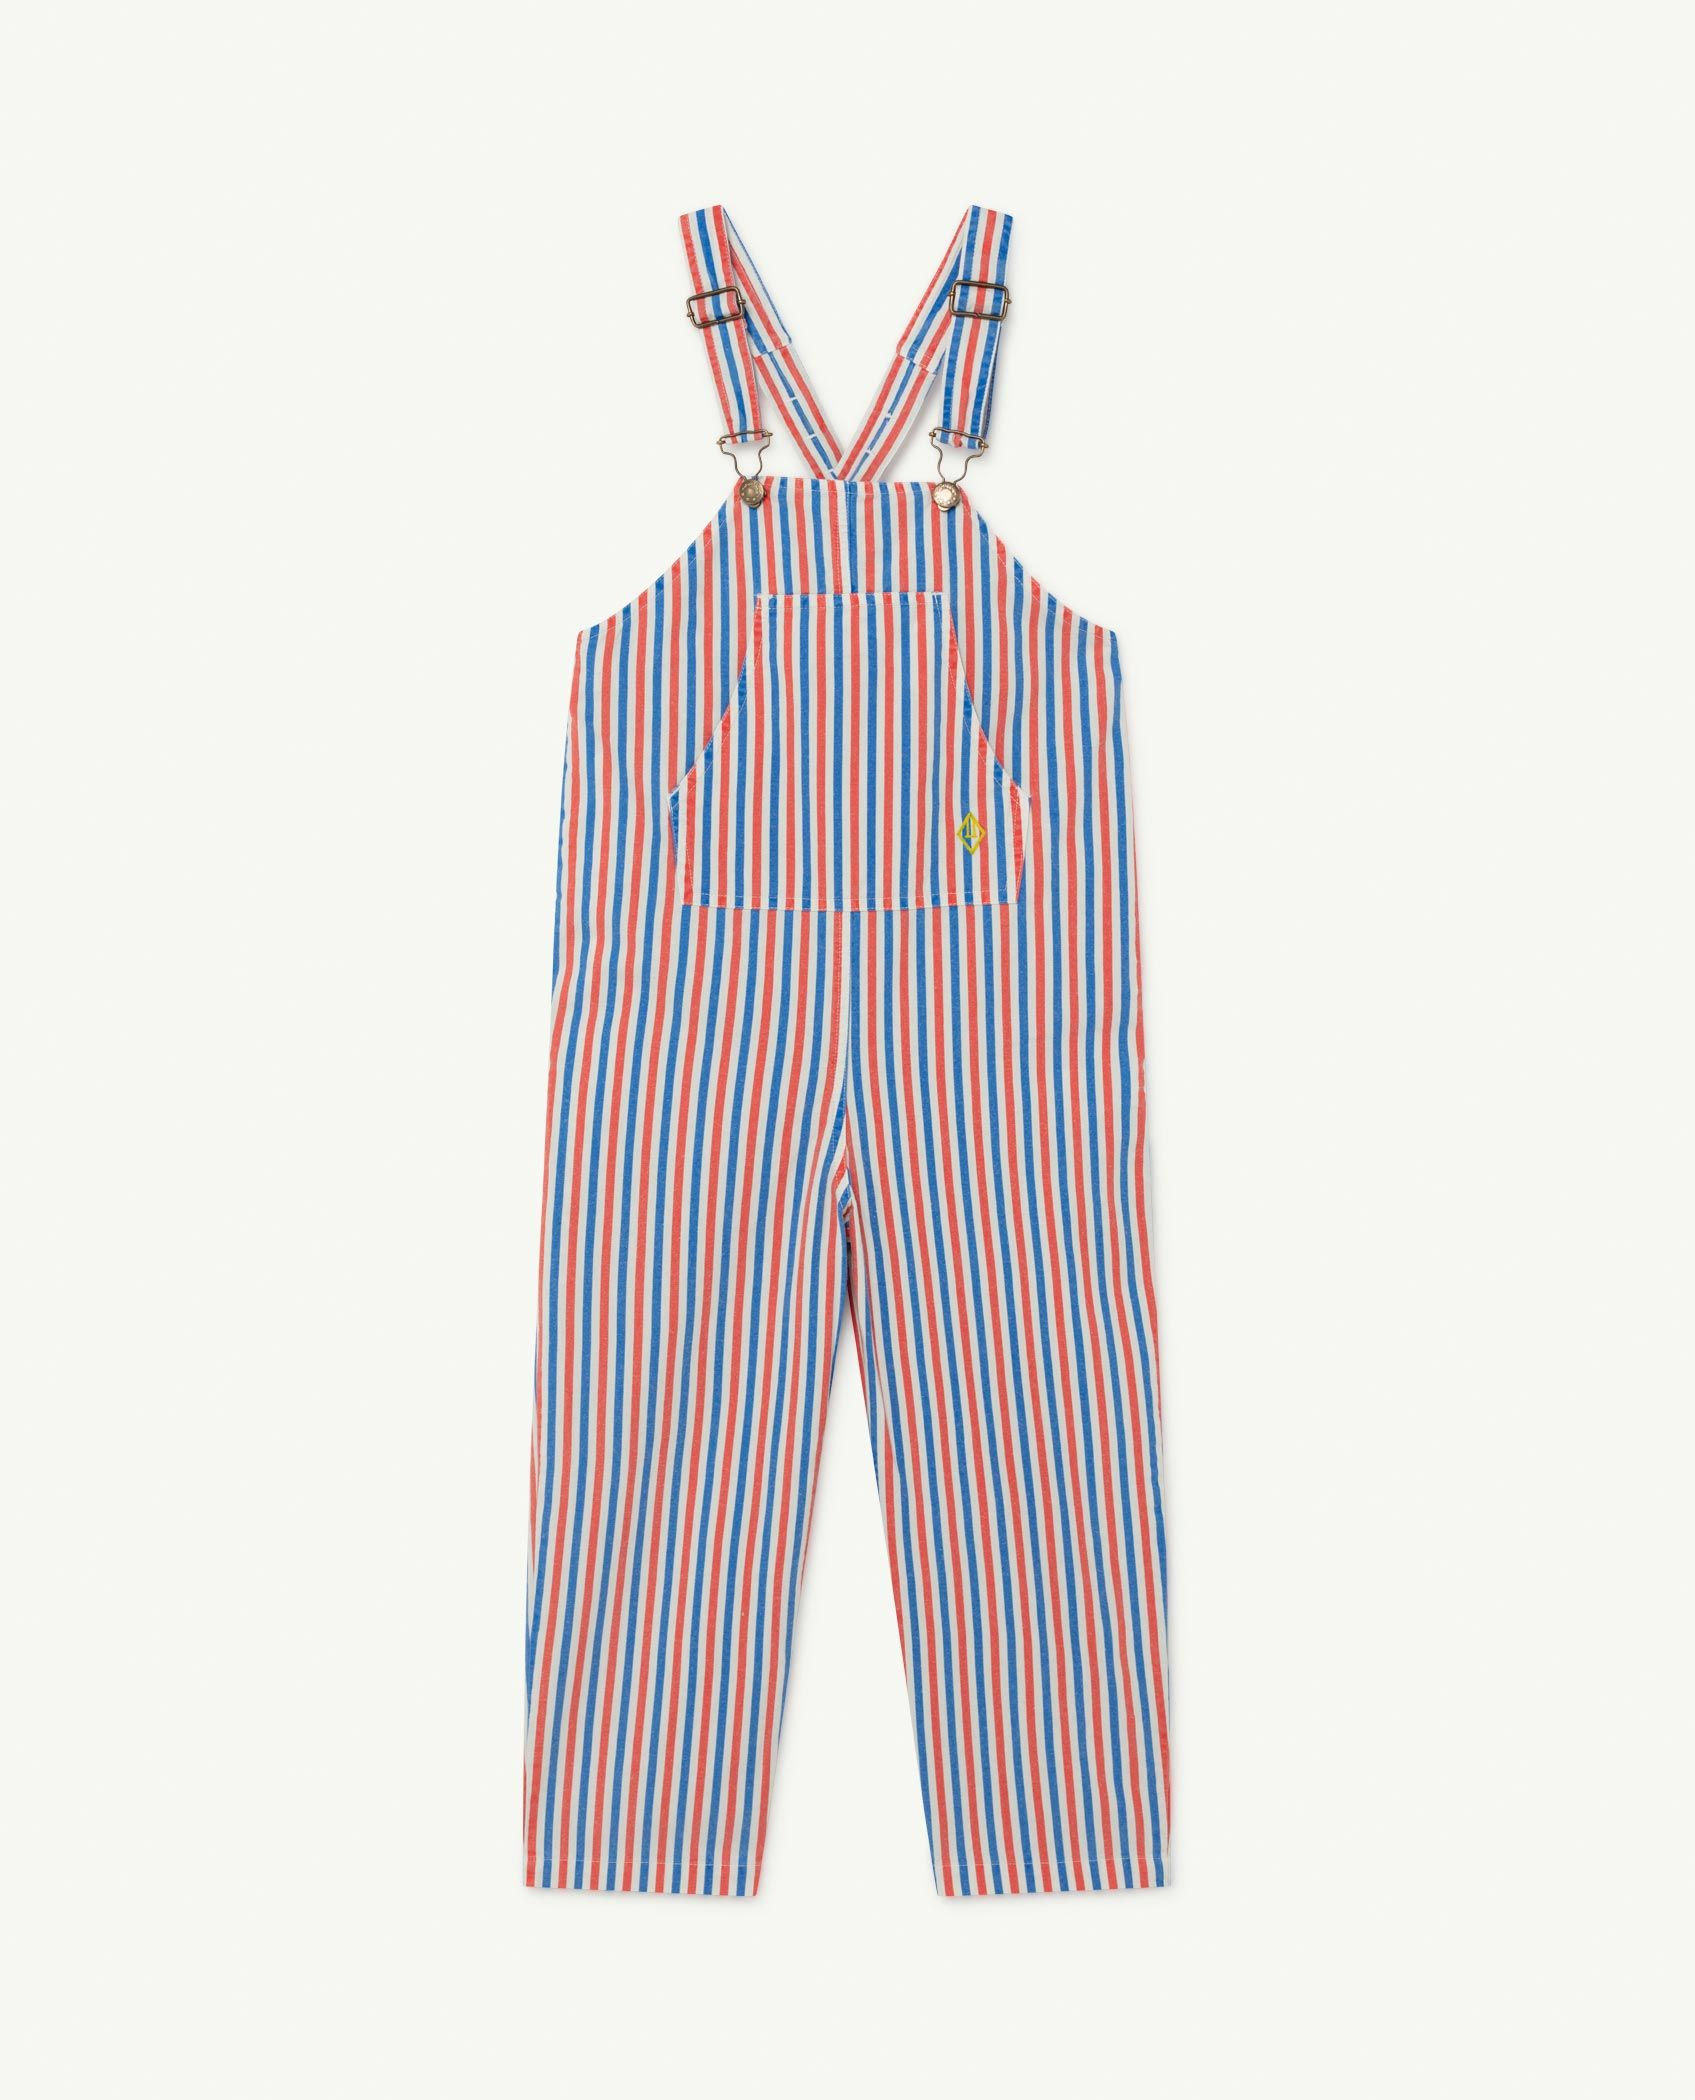 White and Red Stripes Mammoth Jumpsuit img-1